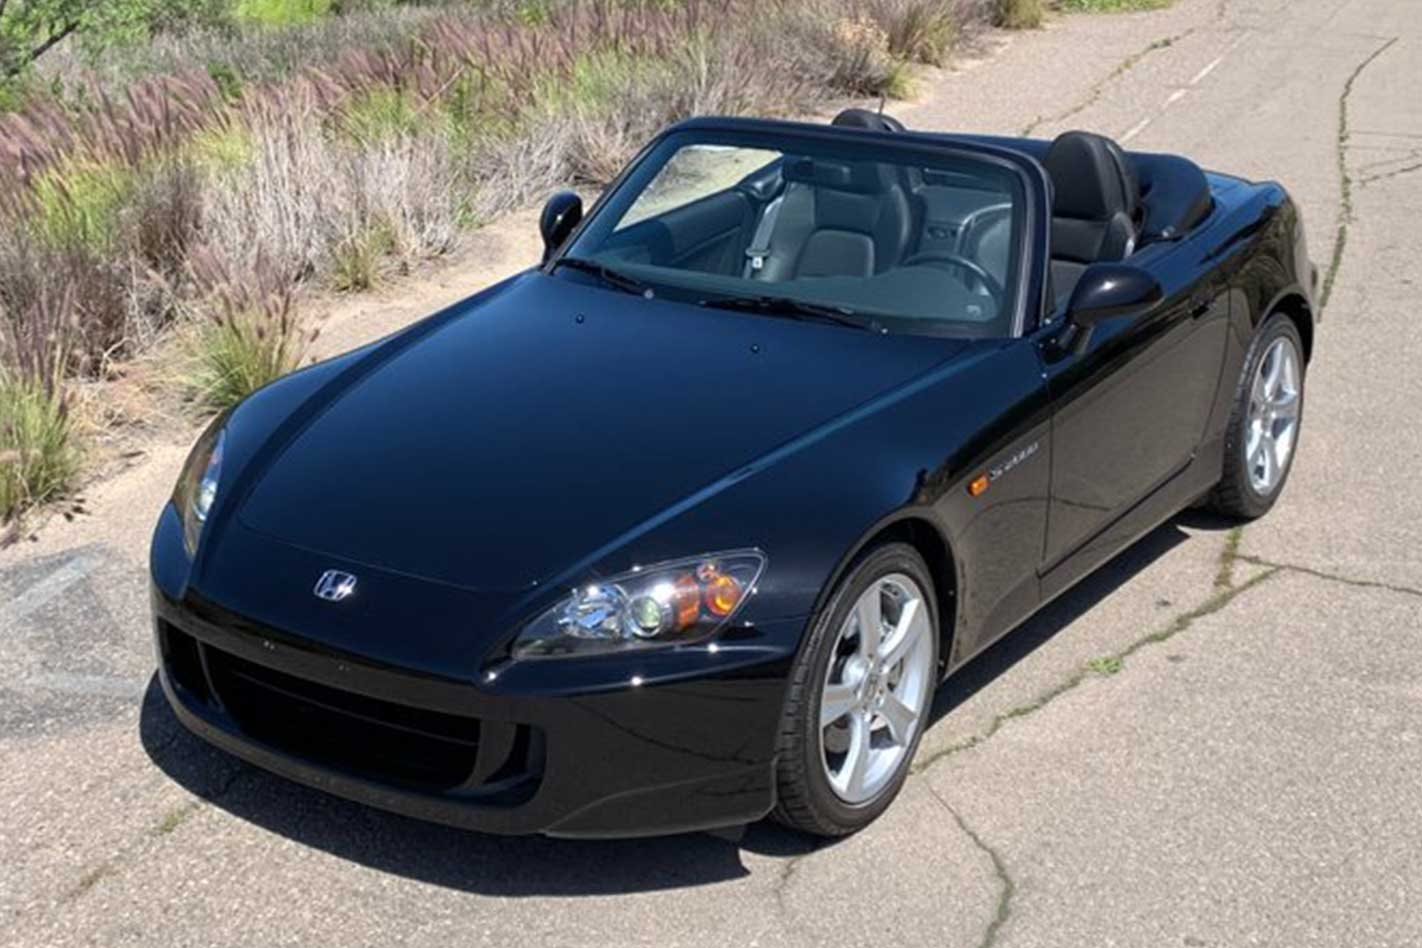 Never-registered 2009 Honda S2000 for sale at six-figures